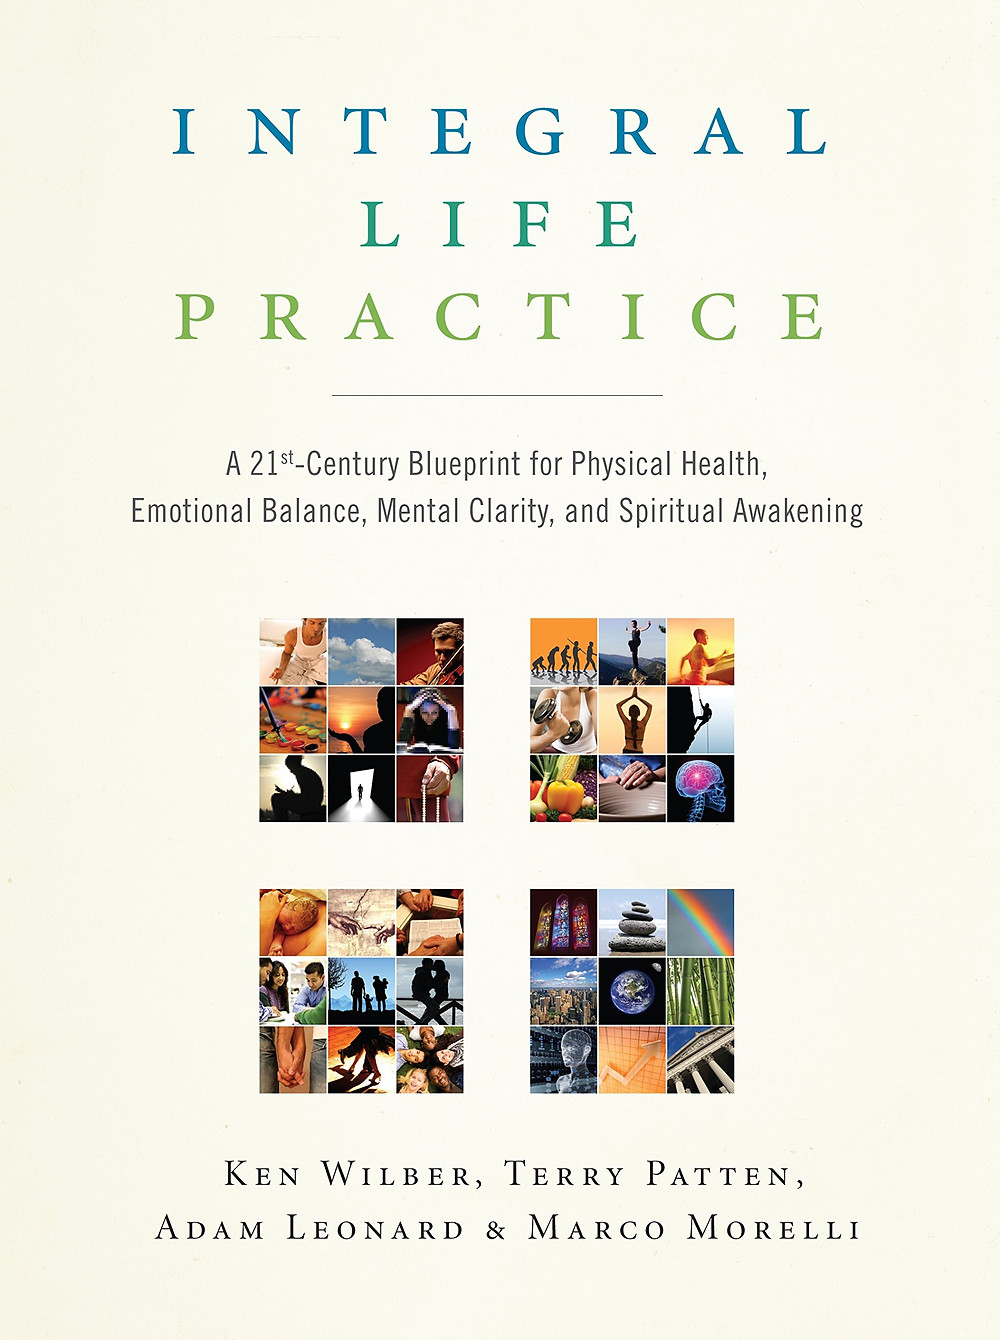 The cover of Integral Life Practice